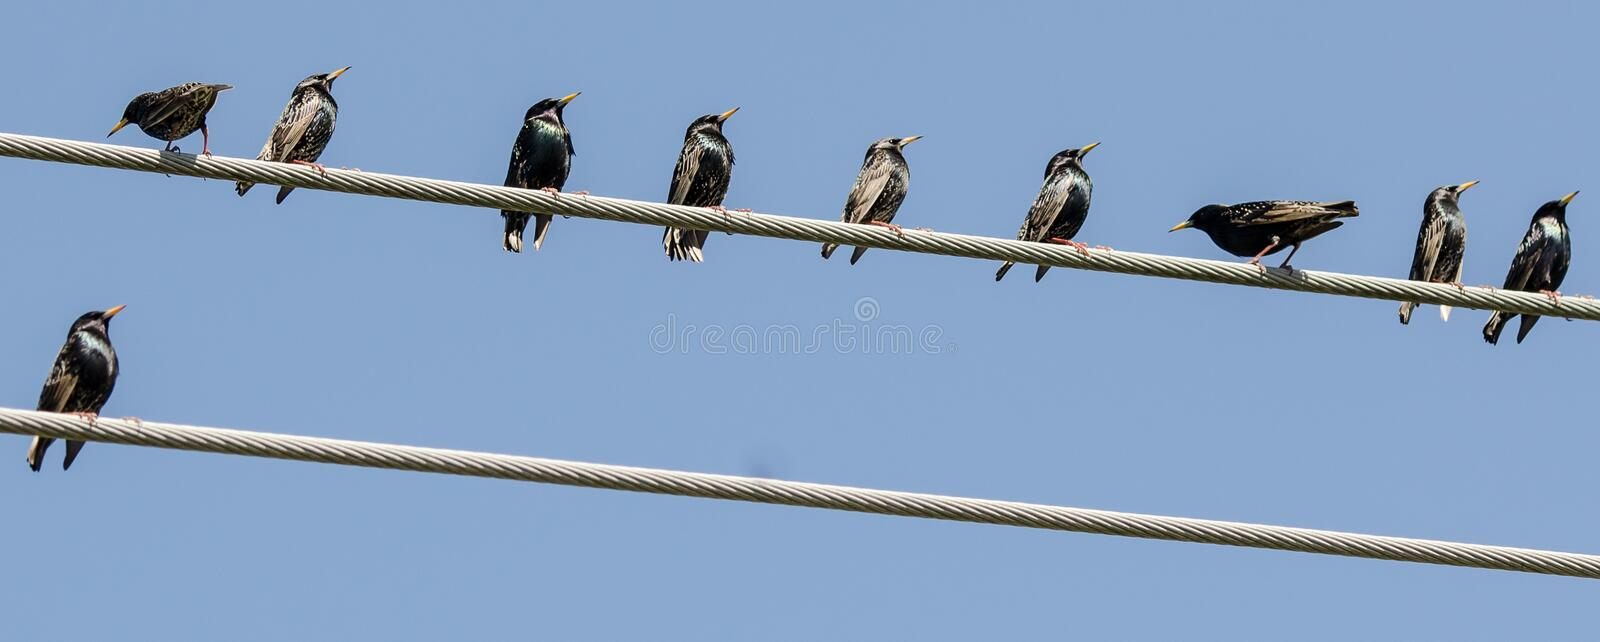 I`ll take the lower level. A crowd of Starlings perched on telephone wires with only one choosing the lower wire